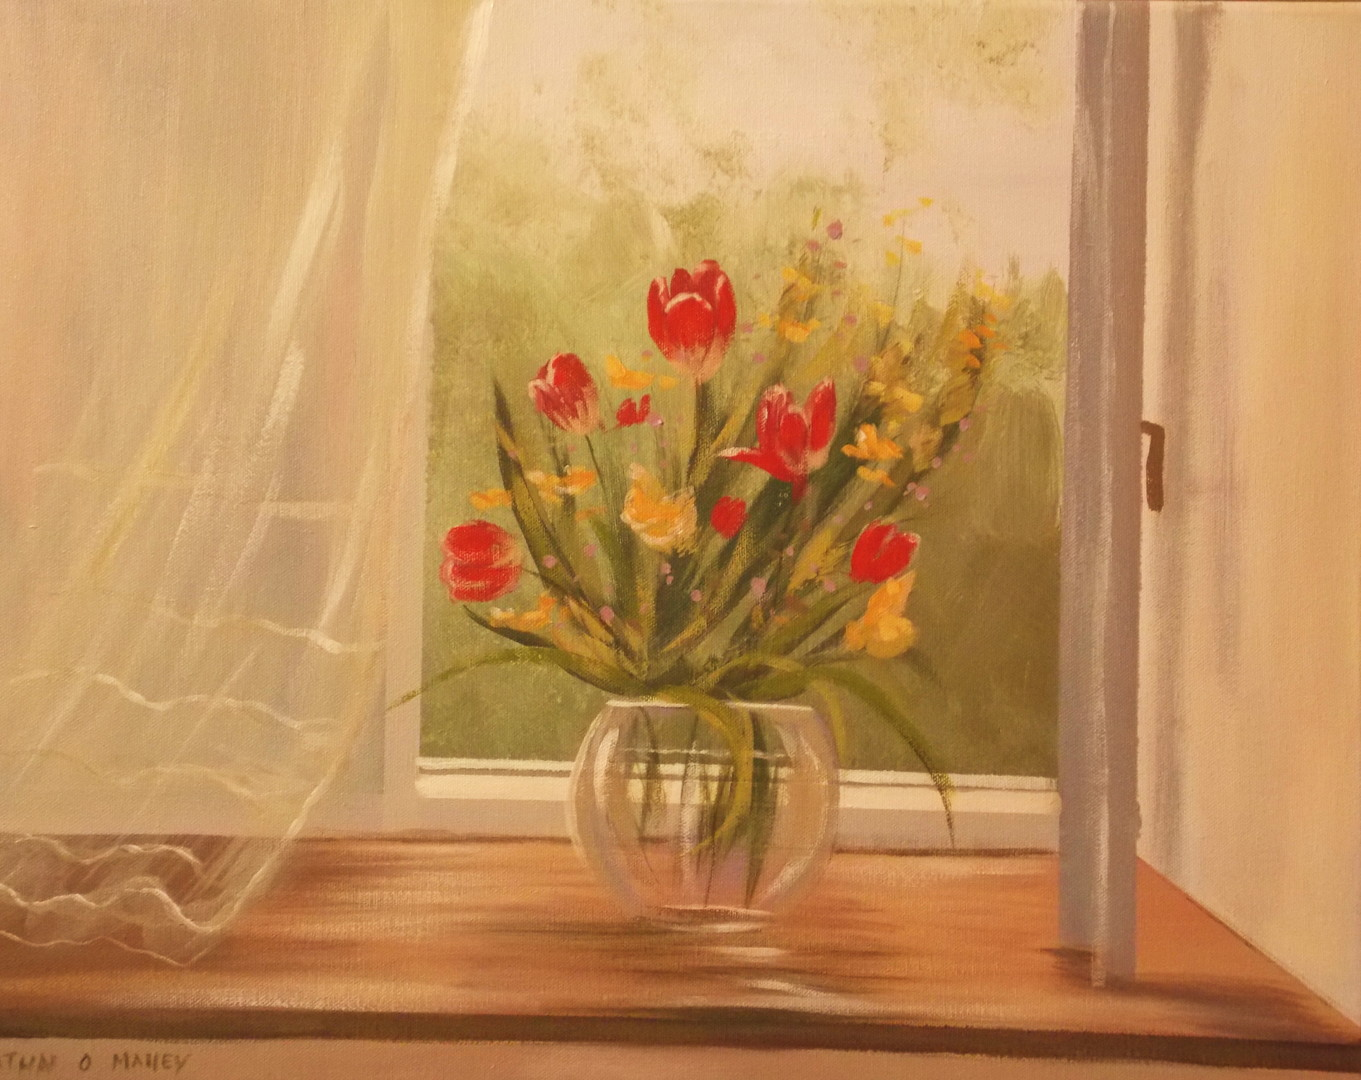 Cathal O Malley - window flowers